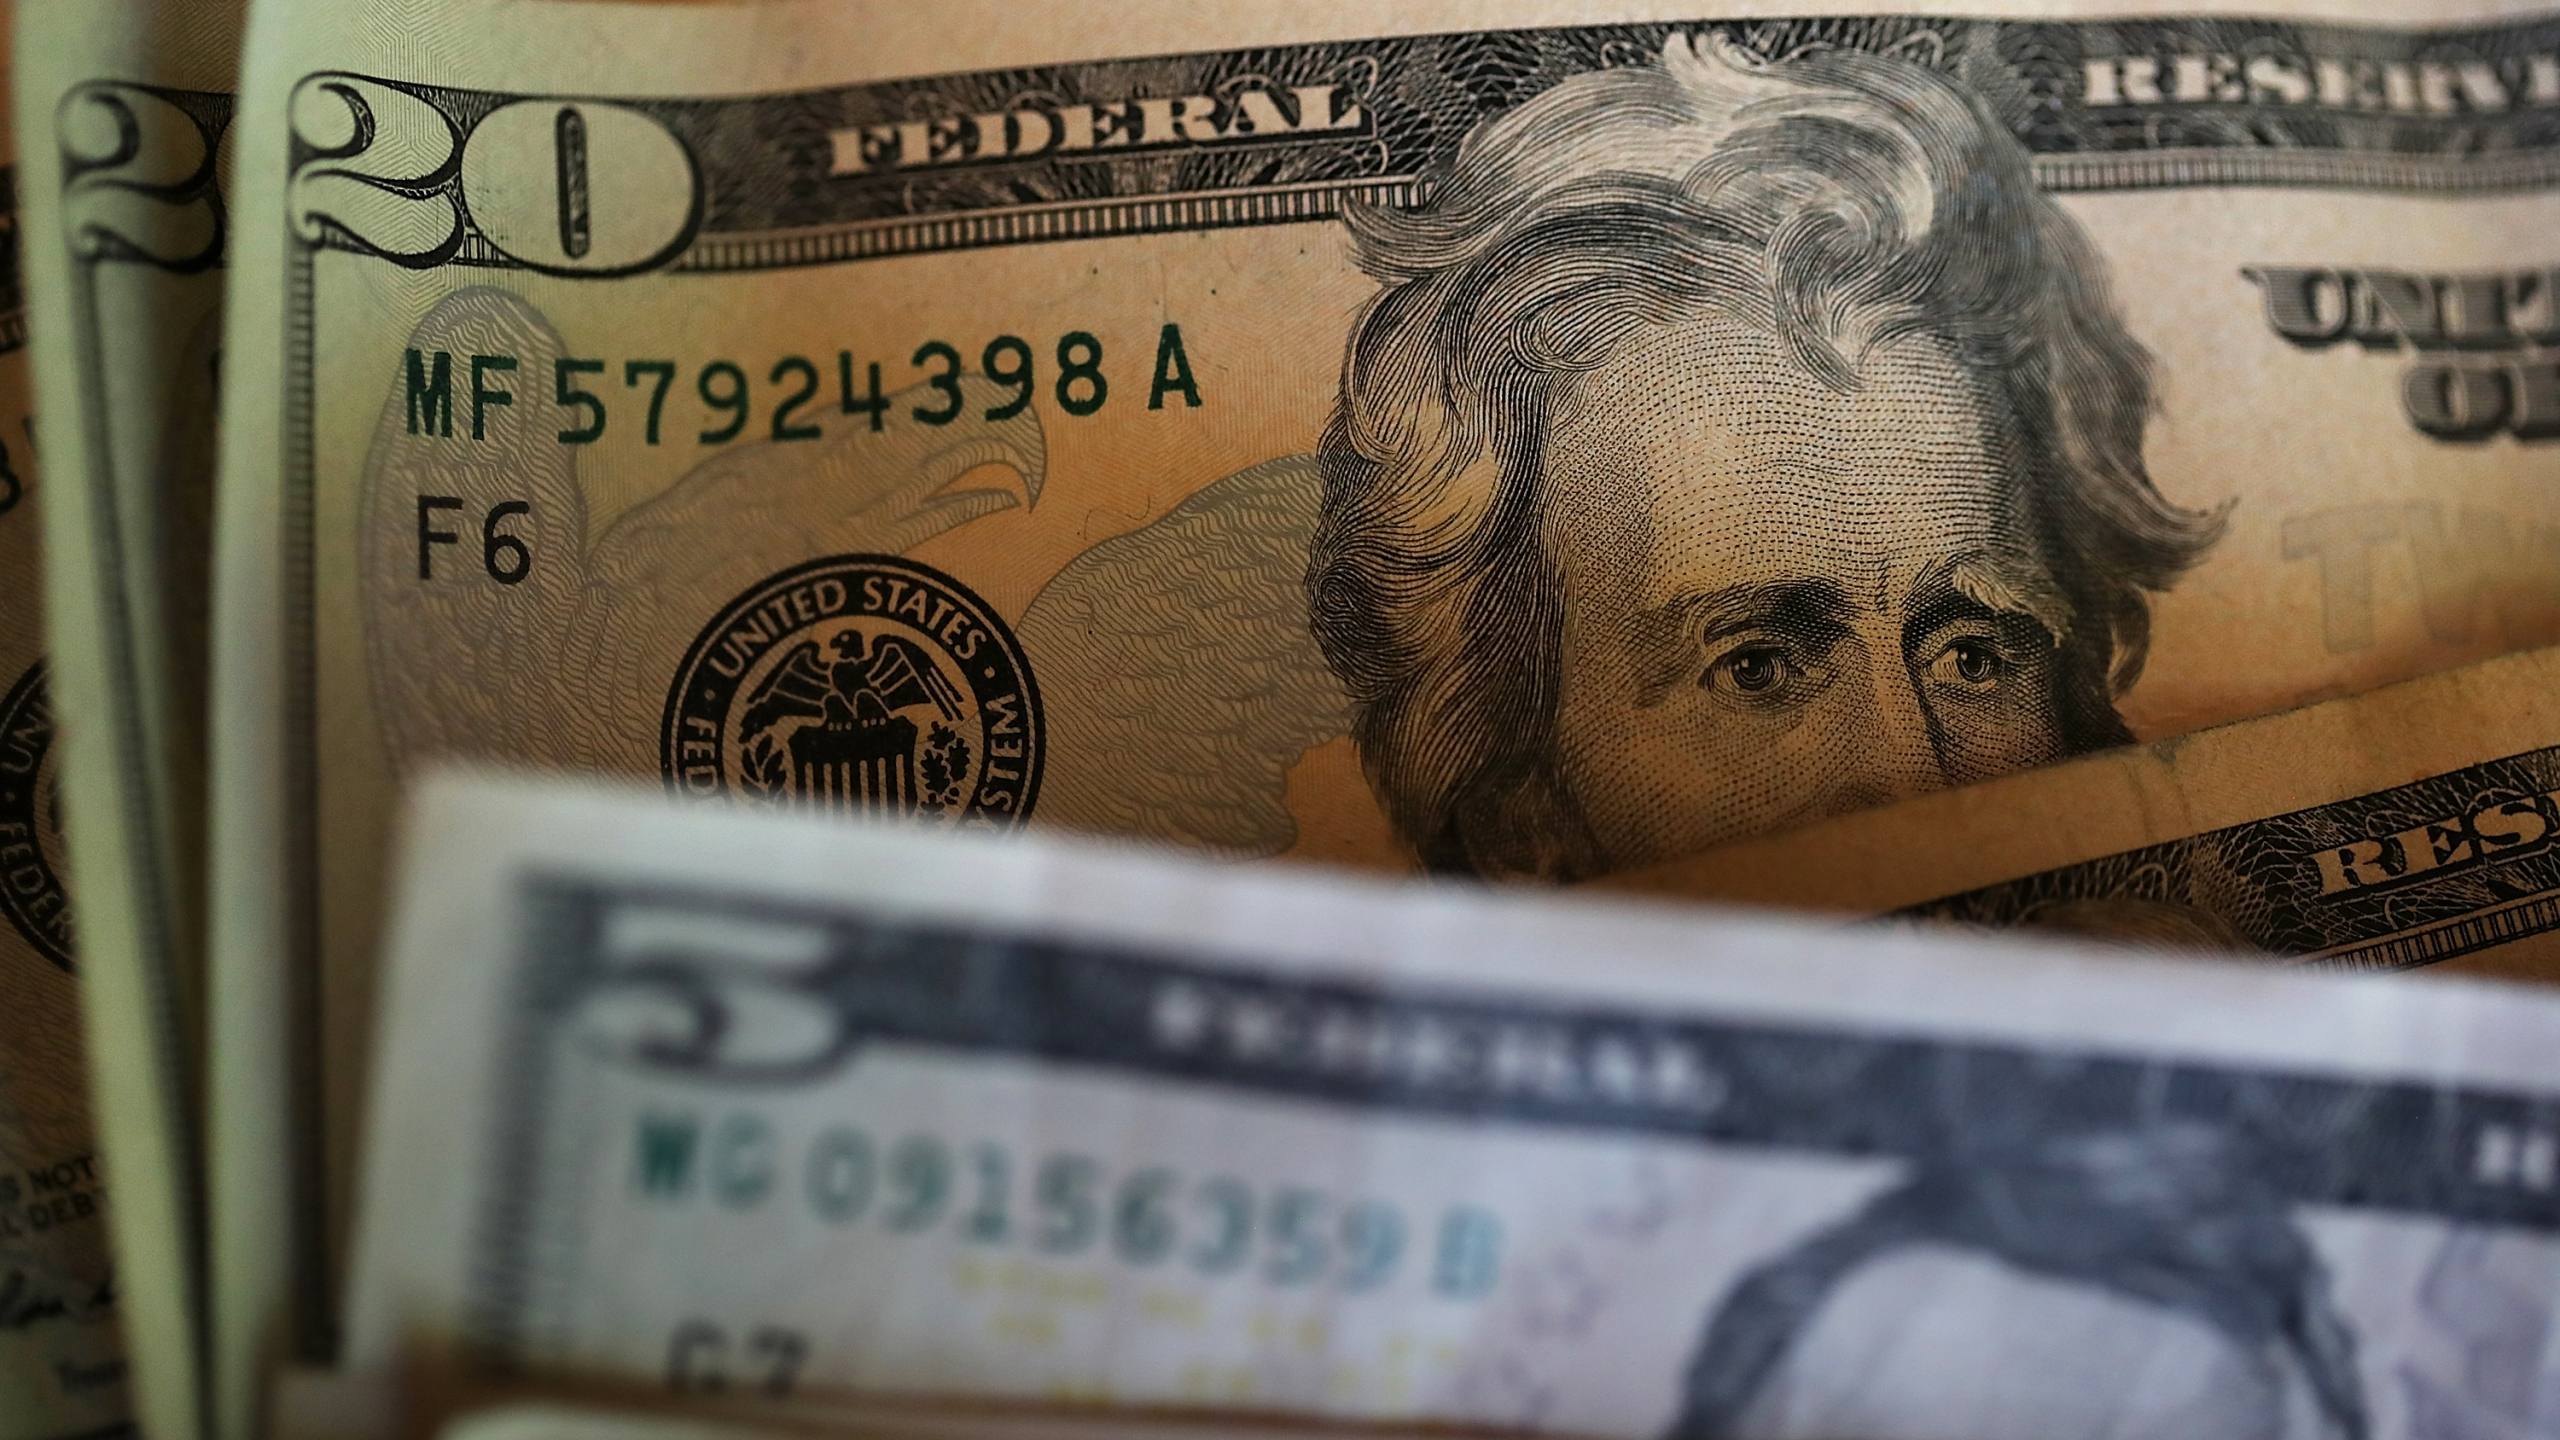 Picture of US paper currency